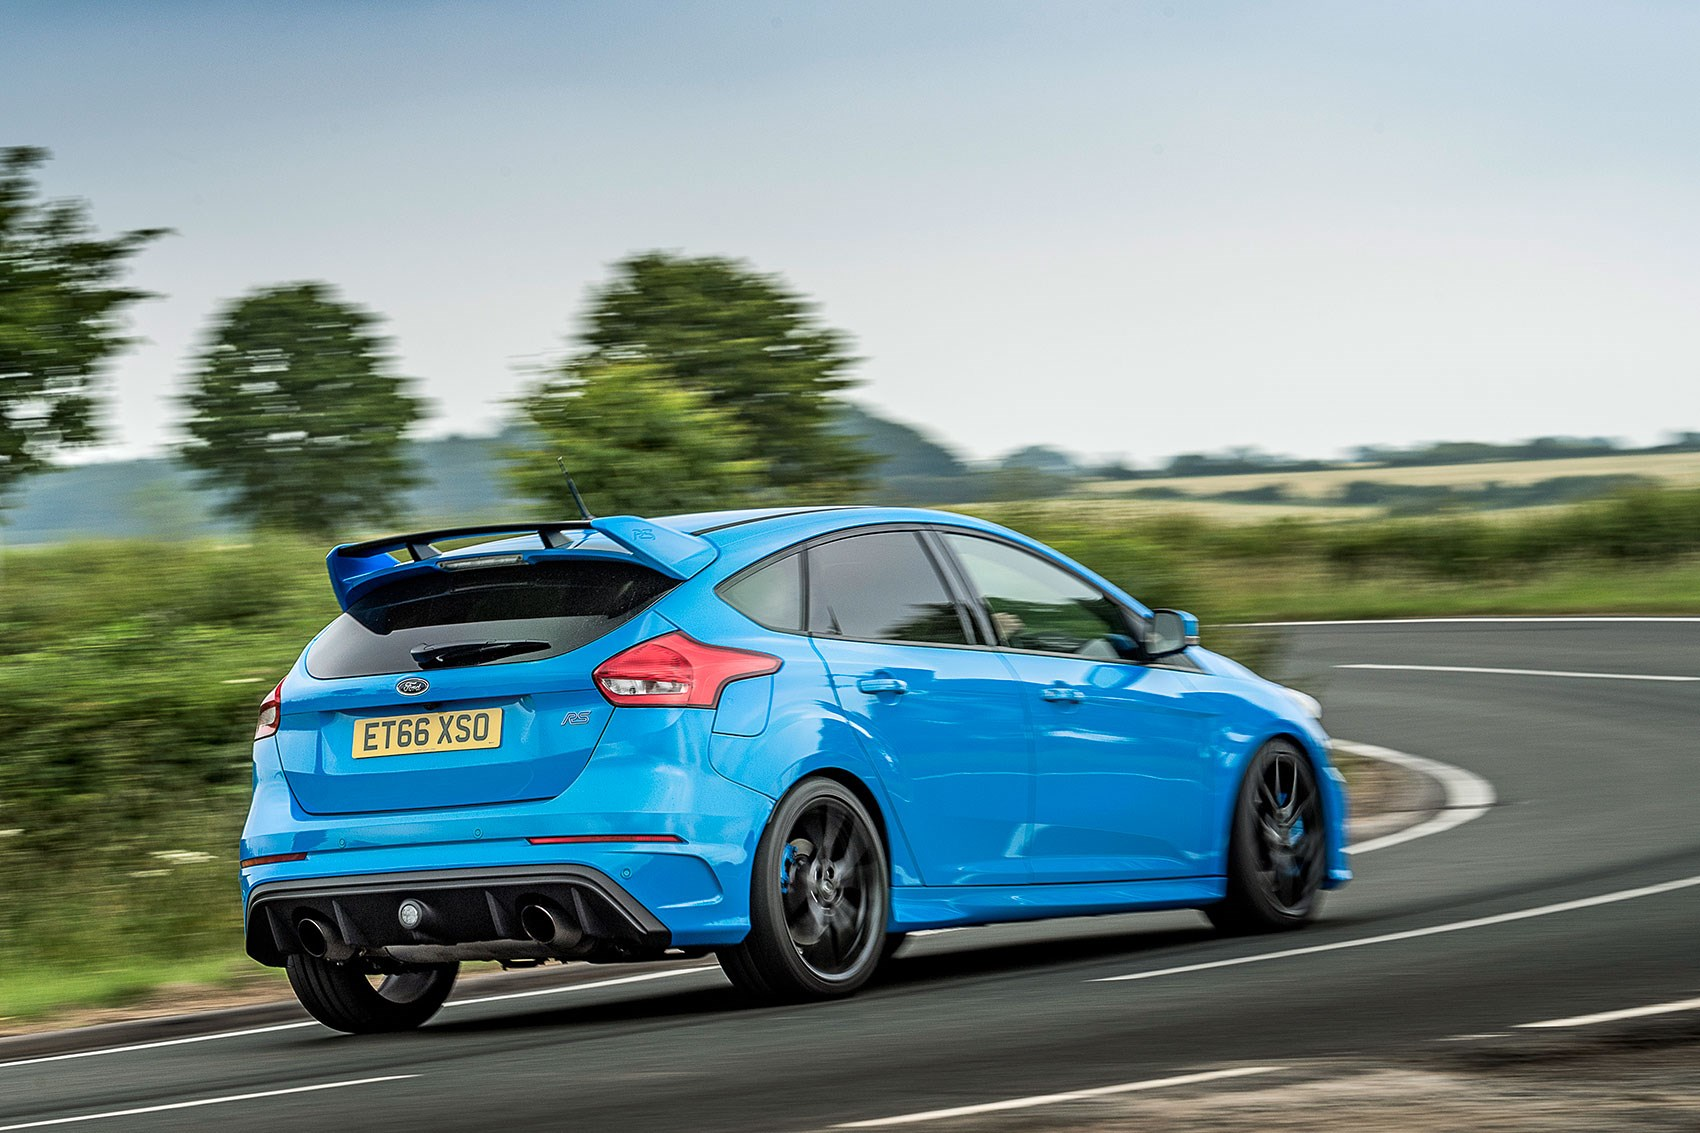 honda civic type r vs ford focus rs vs bmw m140i vs seat leon cupra 300 review by car magazine. Black Bedroom Furniture Sets. Home Design Ideas